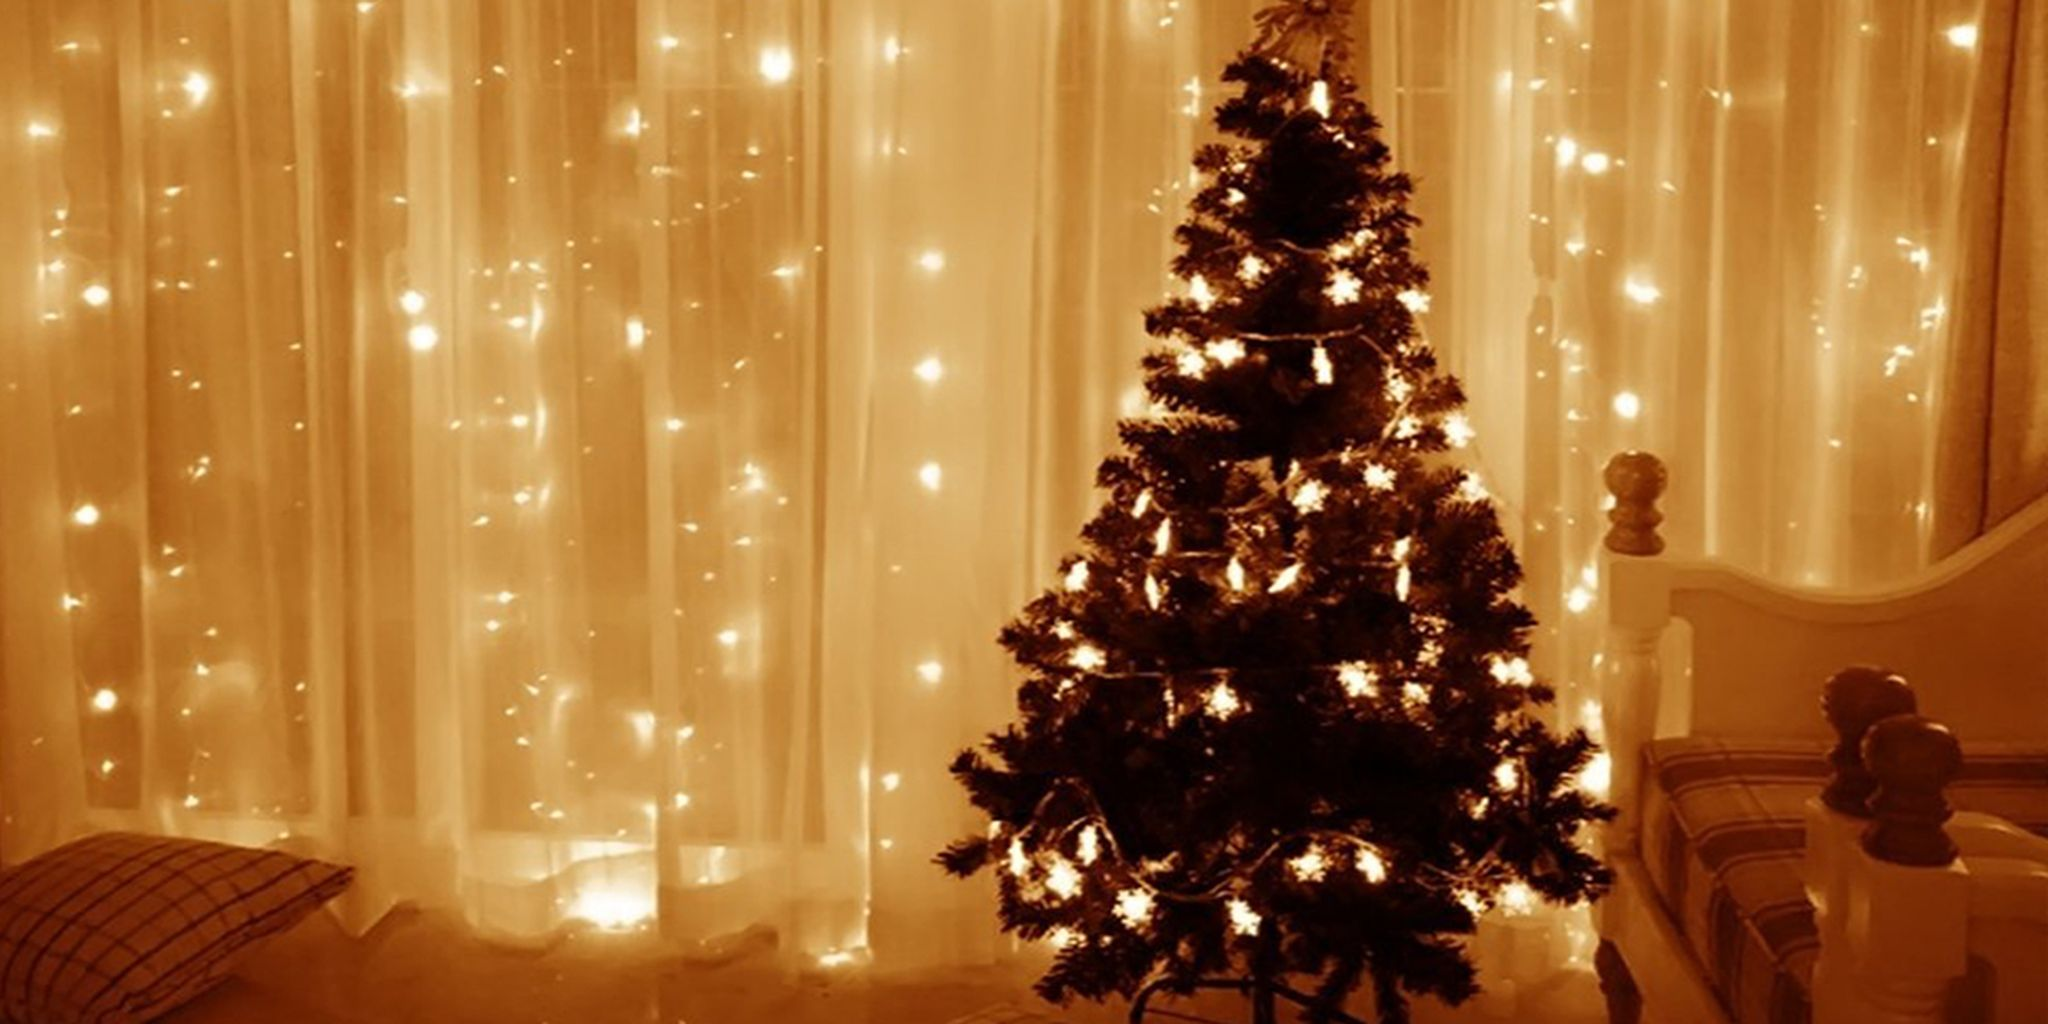 How To Make Curtain Lights Make A Magical Wall Of Holiday Glow With These 19 Light Curtains